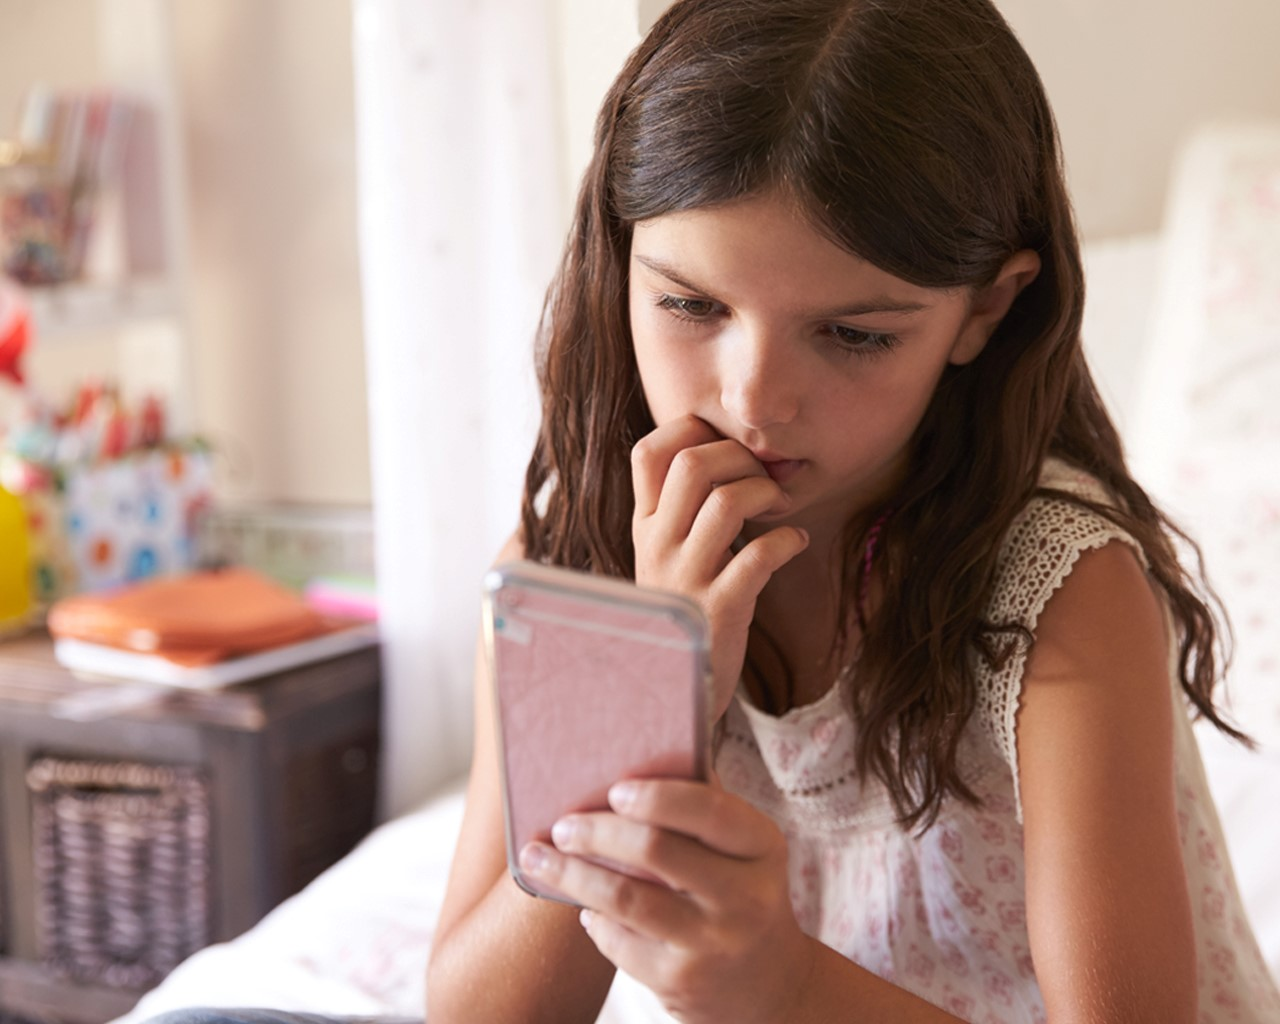 A child views her mobile phone with a worried expression